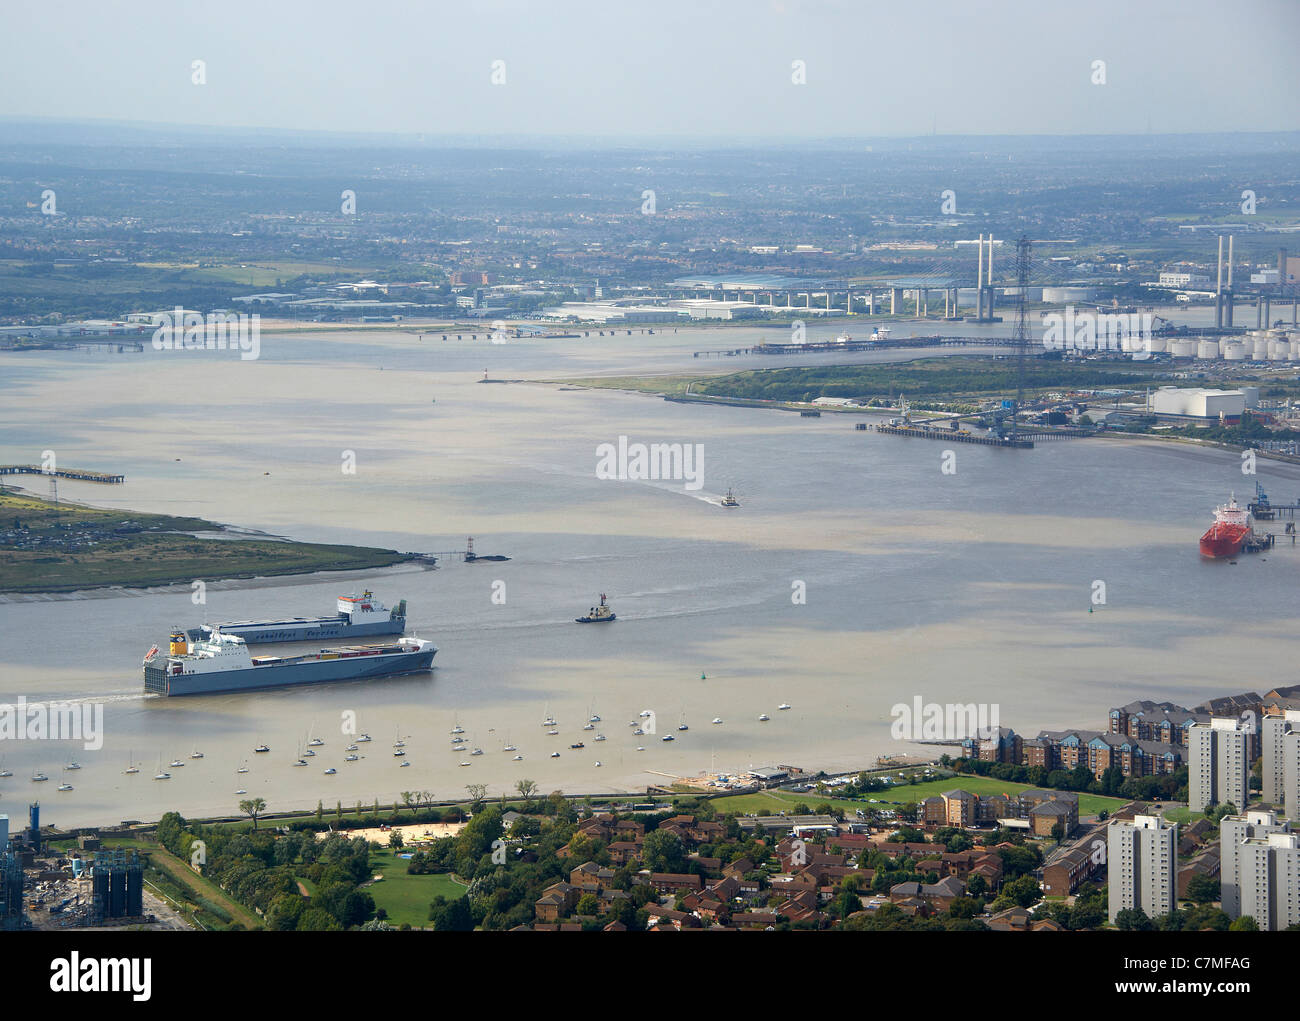 Looking up the River Thames from Tilbury, with the Dartford Crosiing visible, South East England - Stock Image